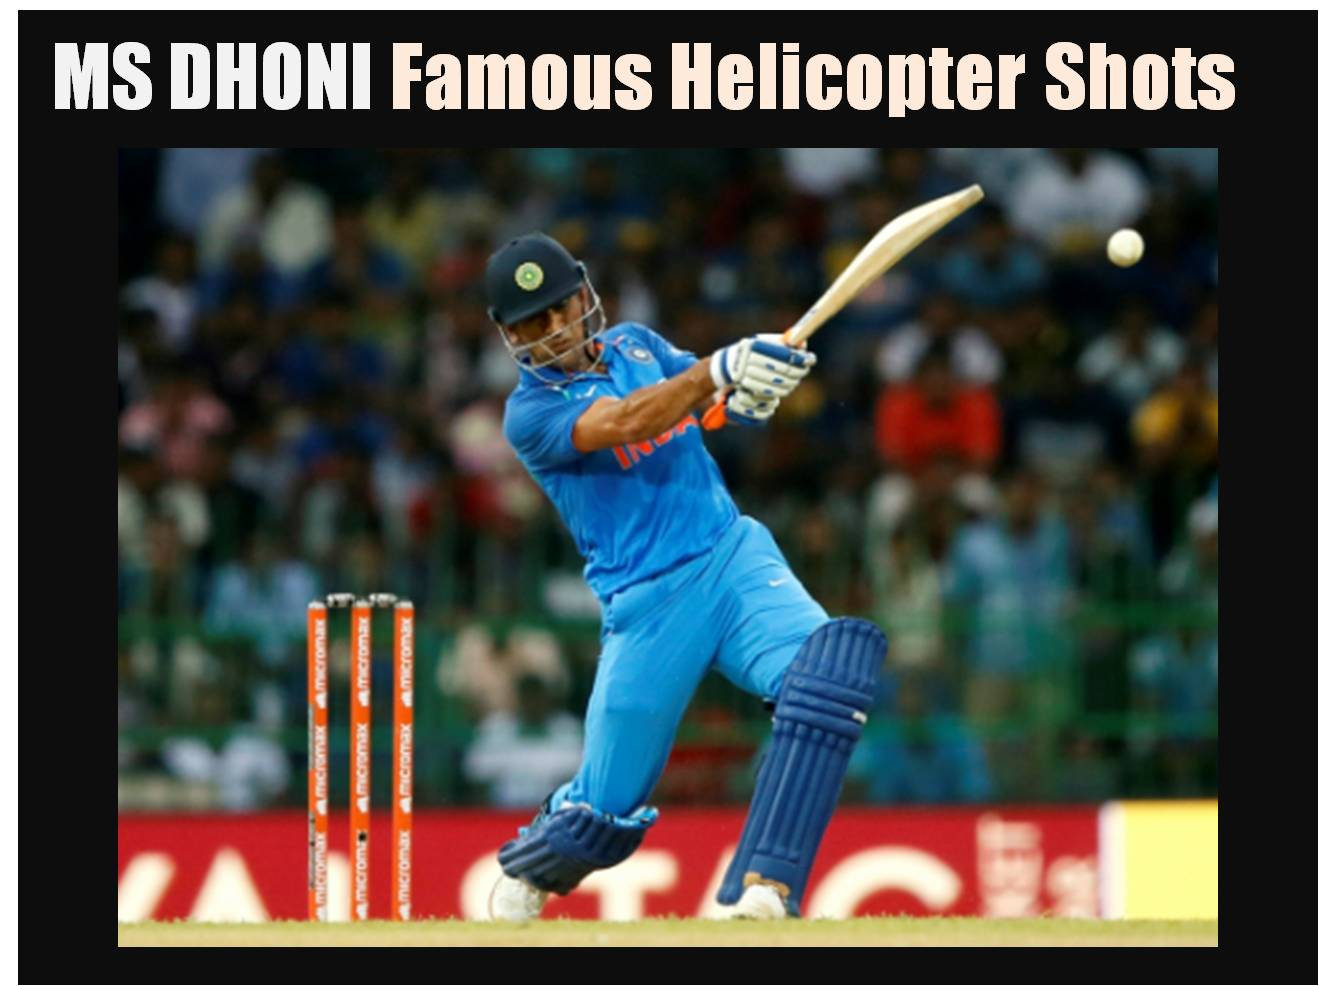 MSDhoni_Unique_Playing_Style_Khelmart3